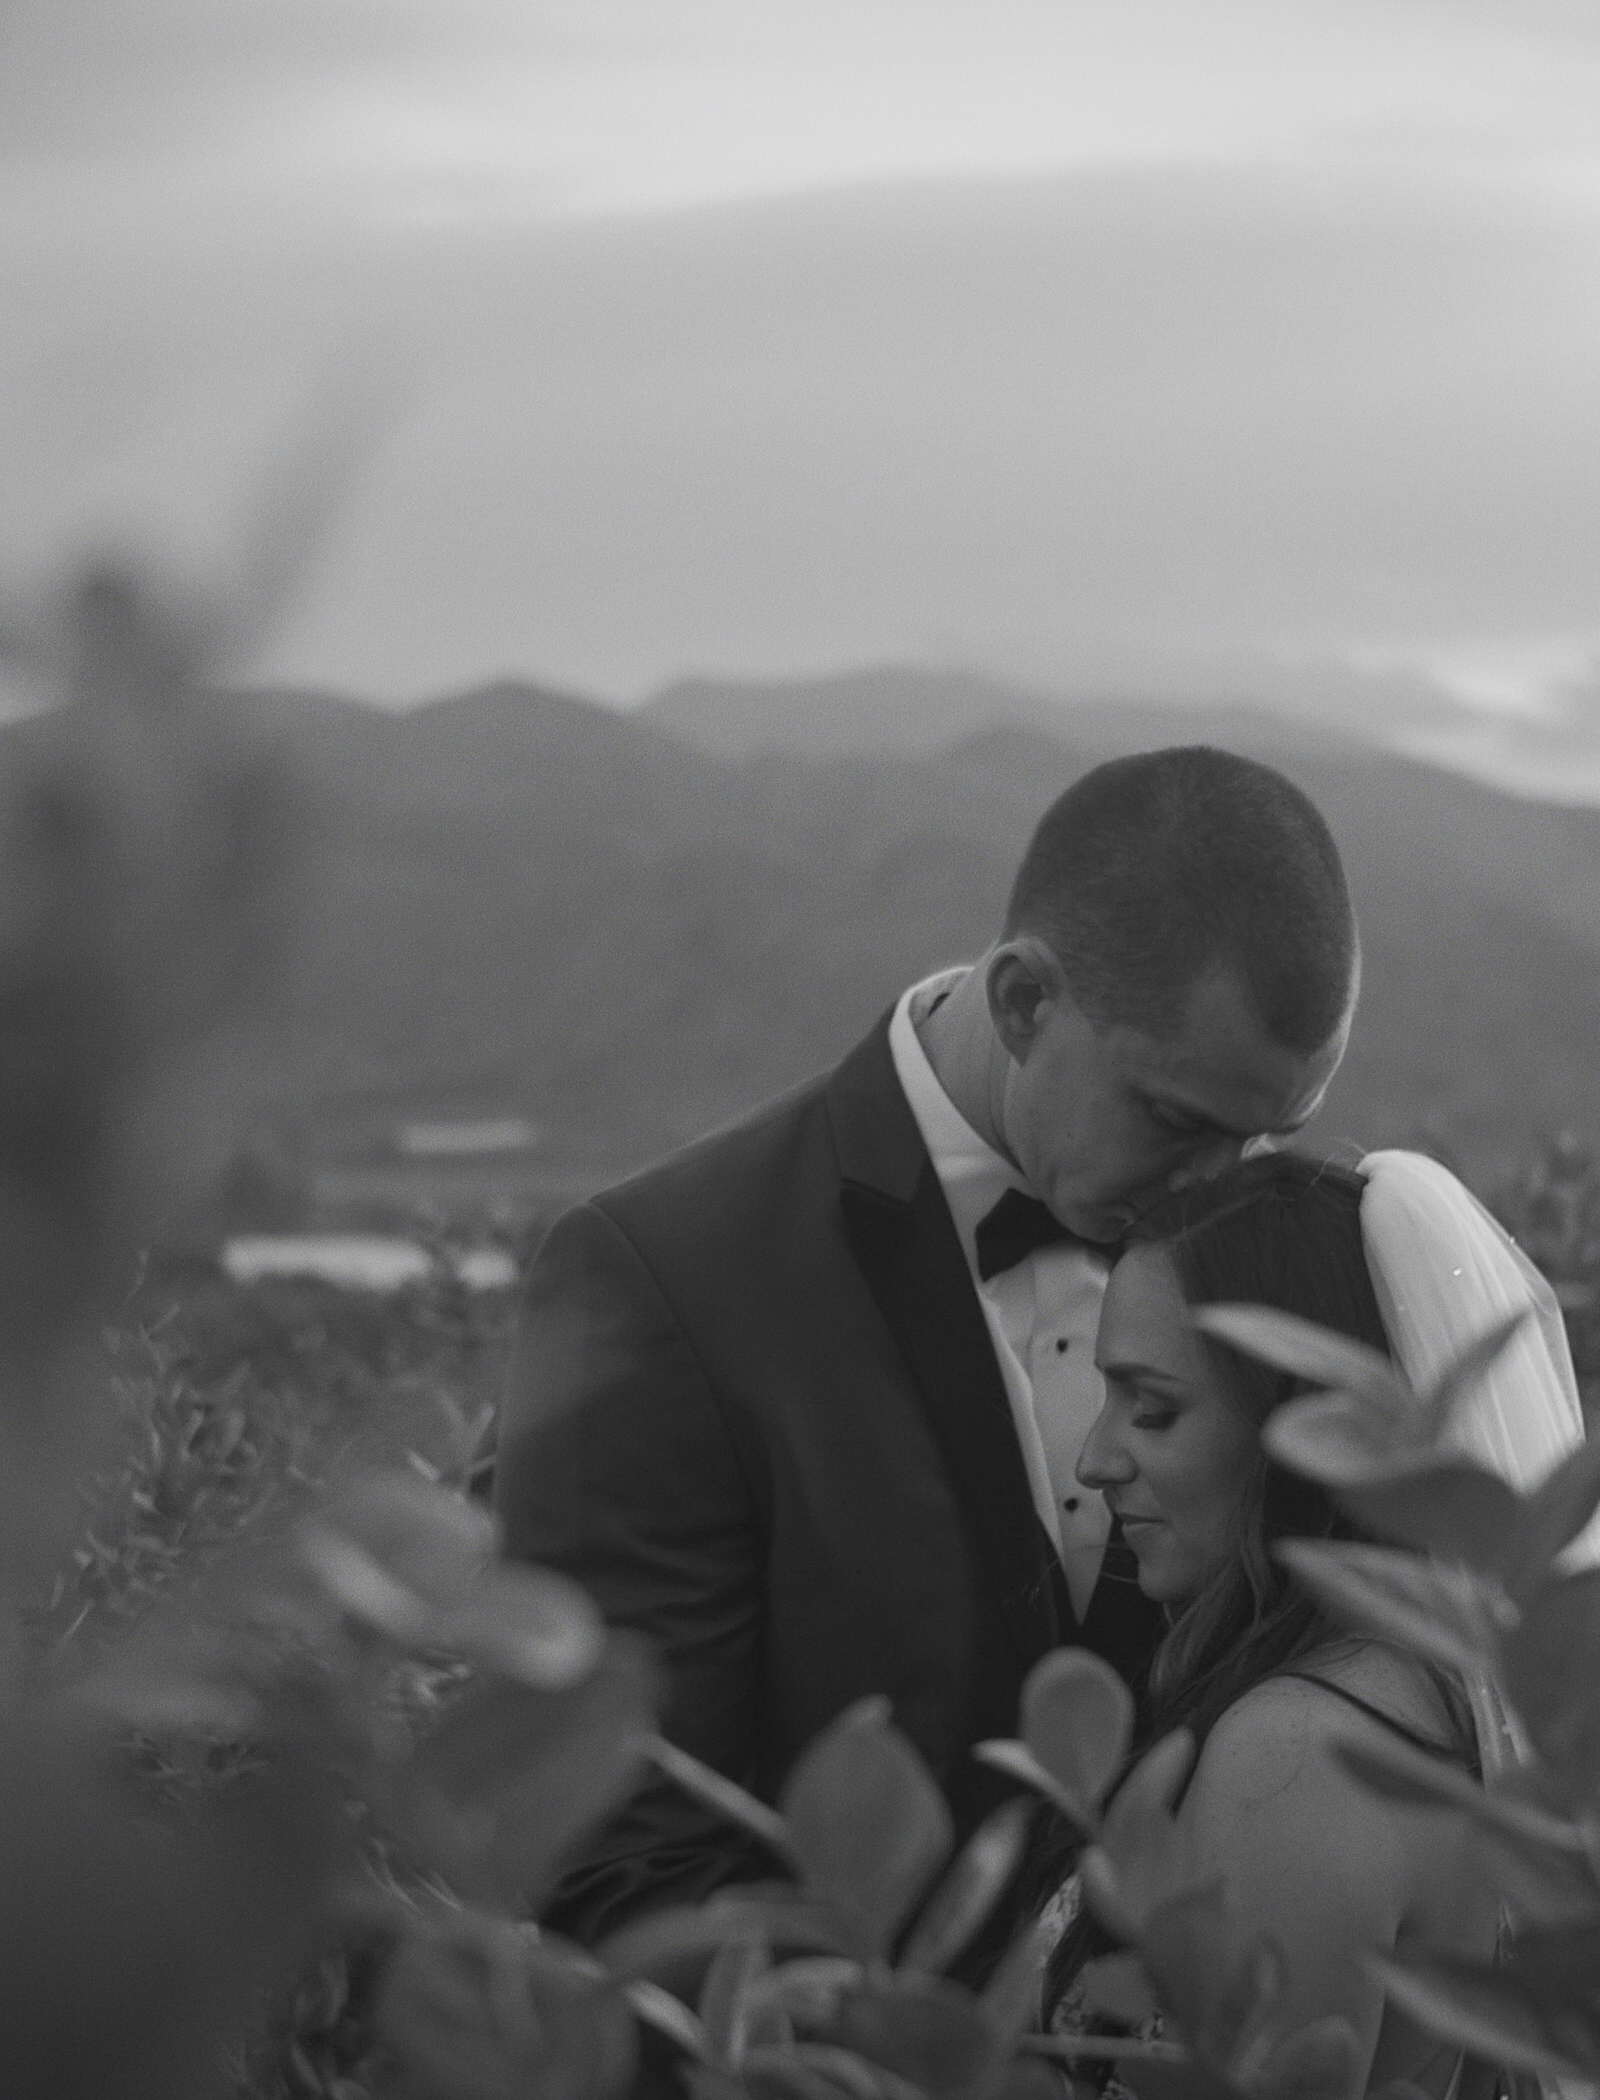 """""""Love isn't about finding the right person, it's about being the right person."""" - Casey + Jaymee had a dreamy outdoor wedding. Their love was breathtaking to watch, especially the way Casey just adored his bride."""